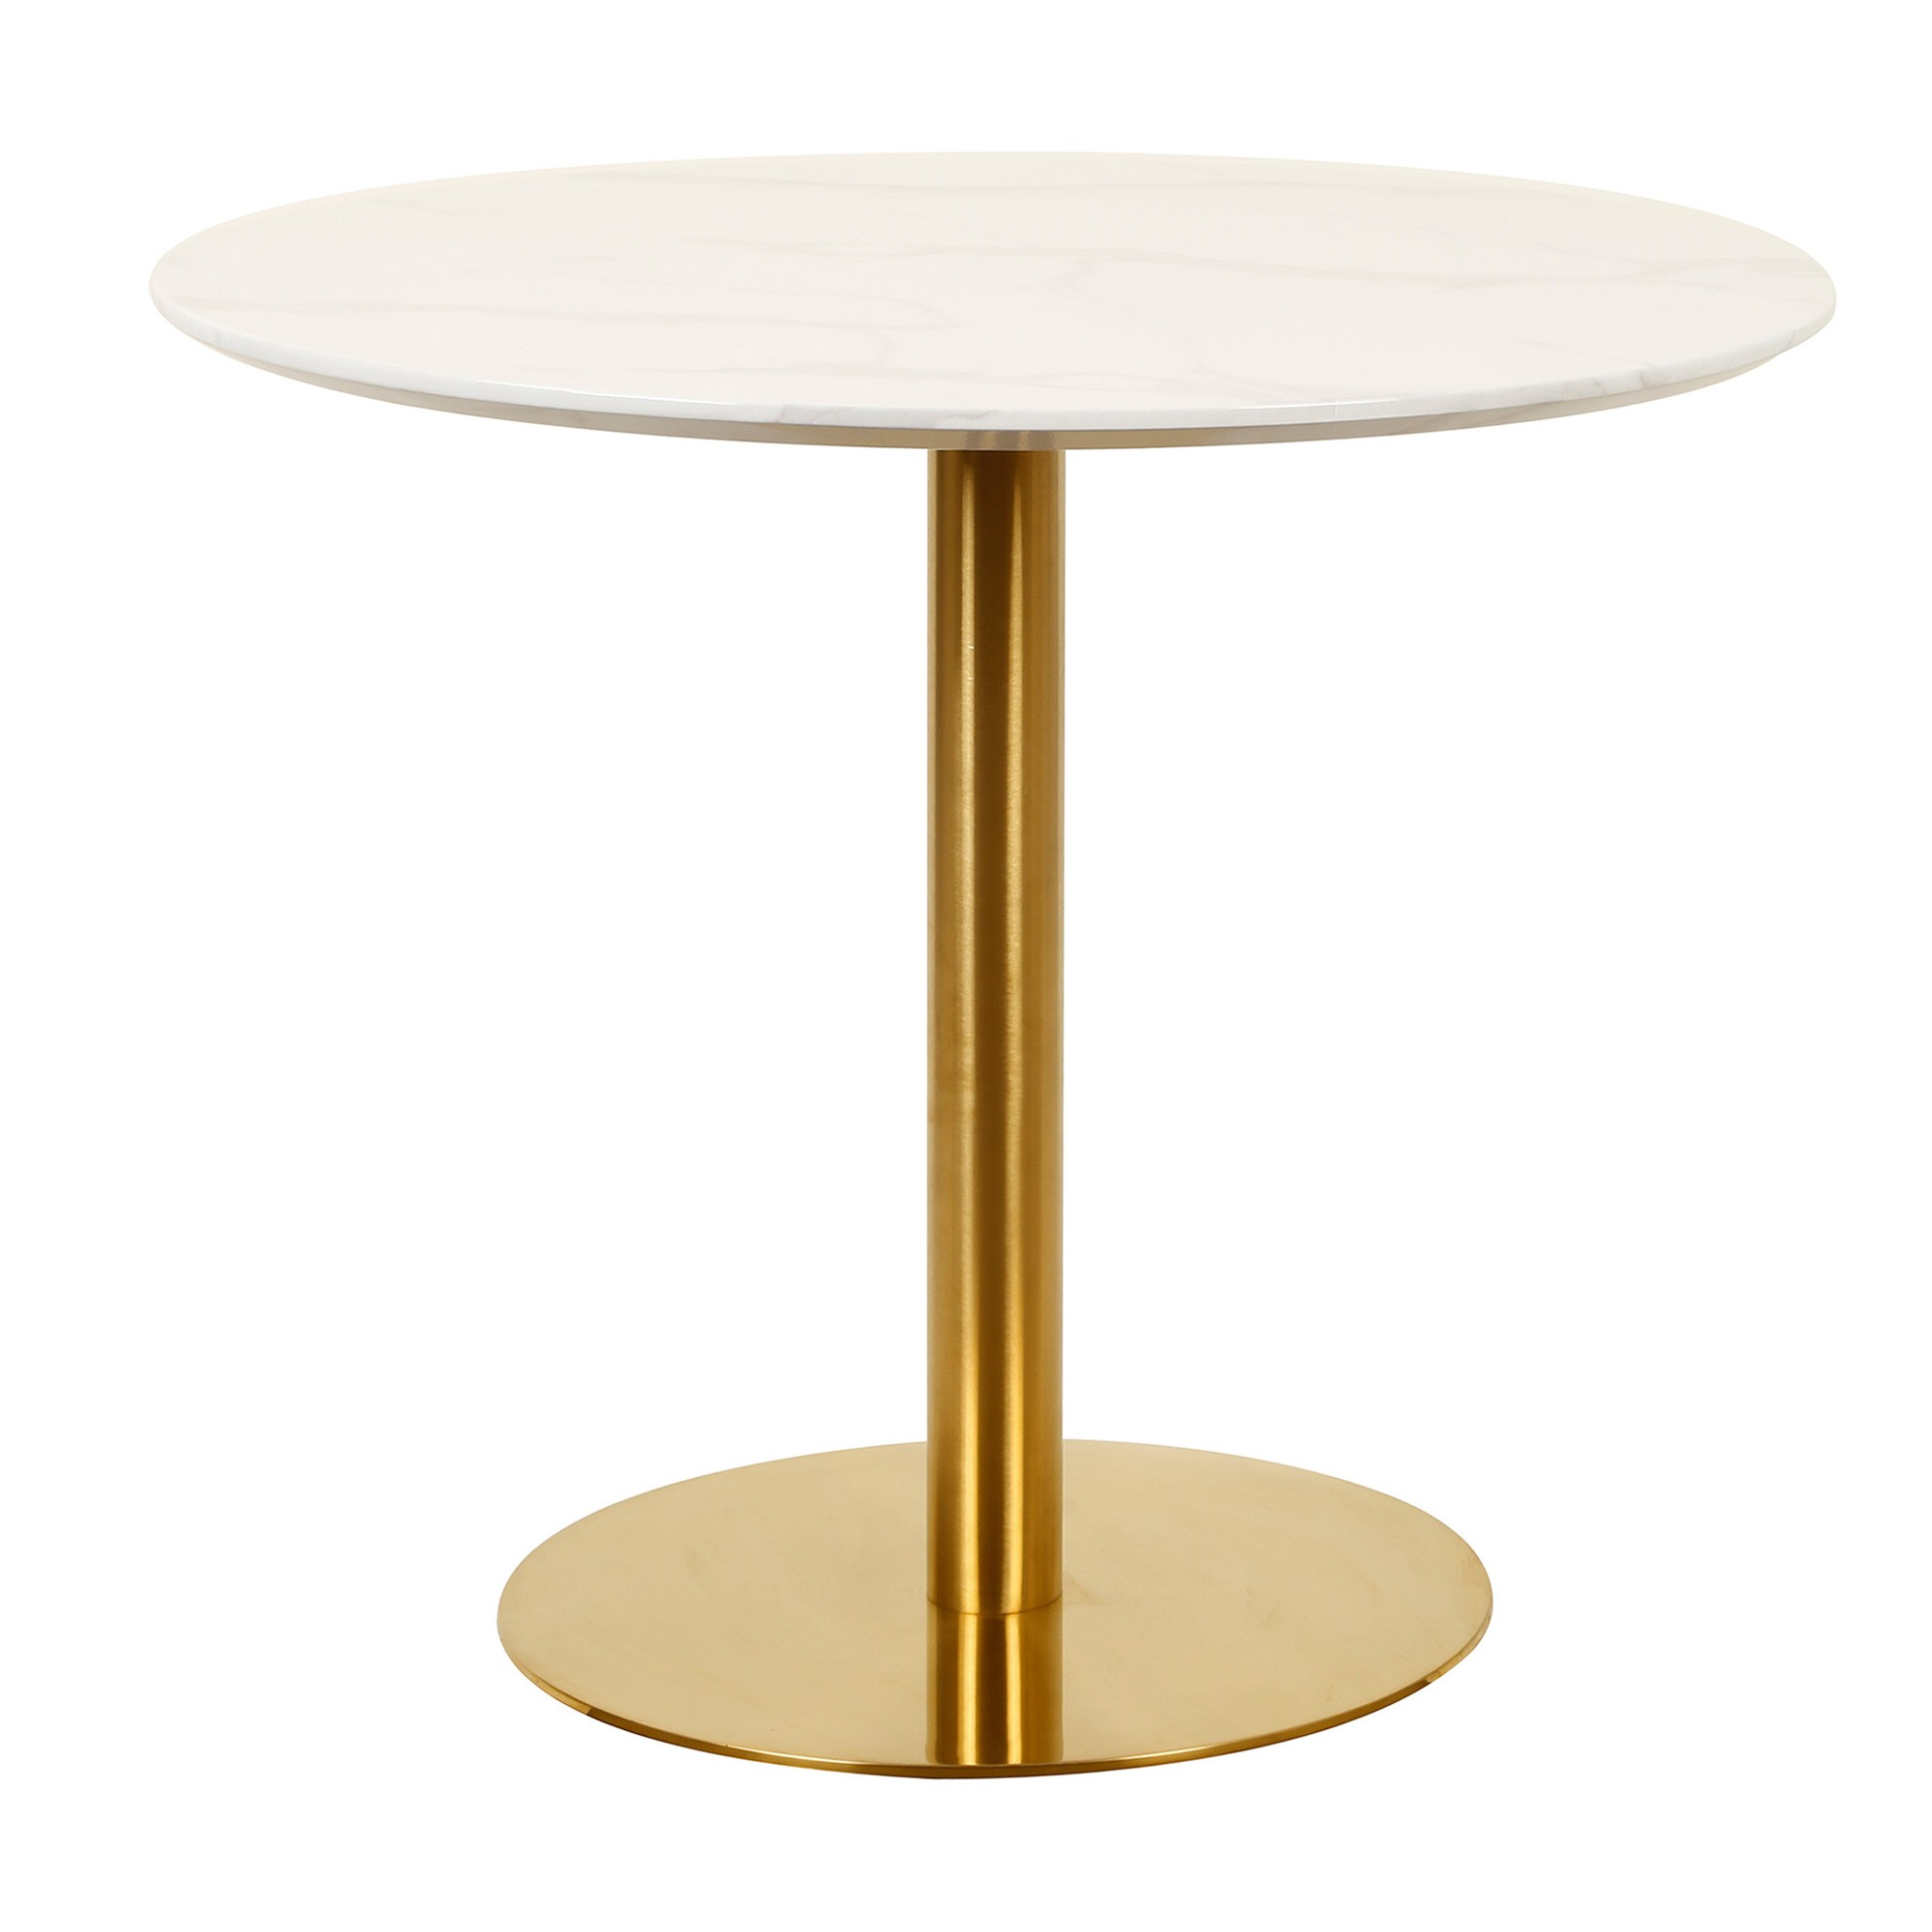 Oaklee Round Dining Table, 90cm, White Agaria / Gold